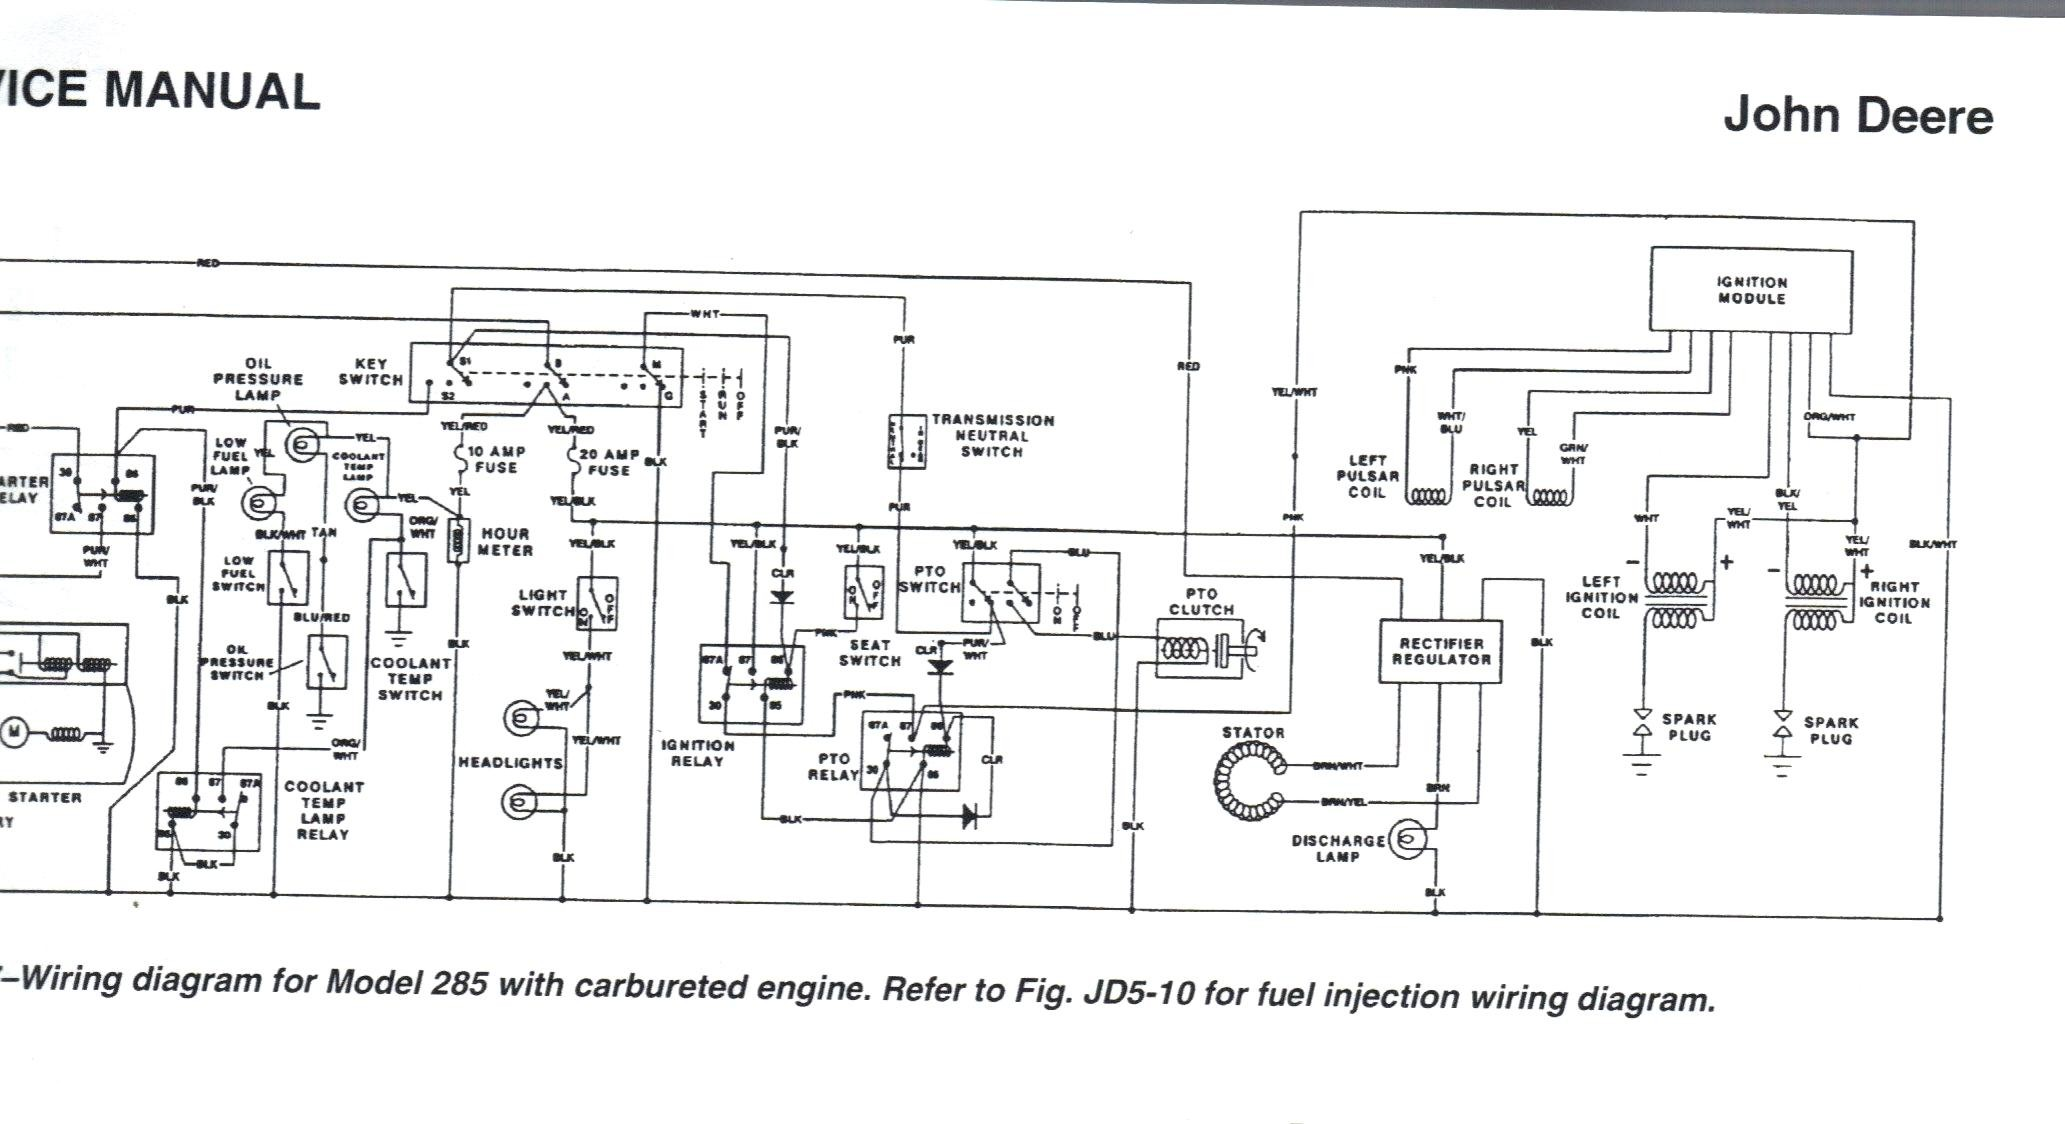 John Deere La105 Engine Diagram John Deere 400 Wiring Diagram Canopi Me and  Hbphelp Of John